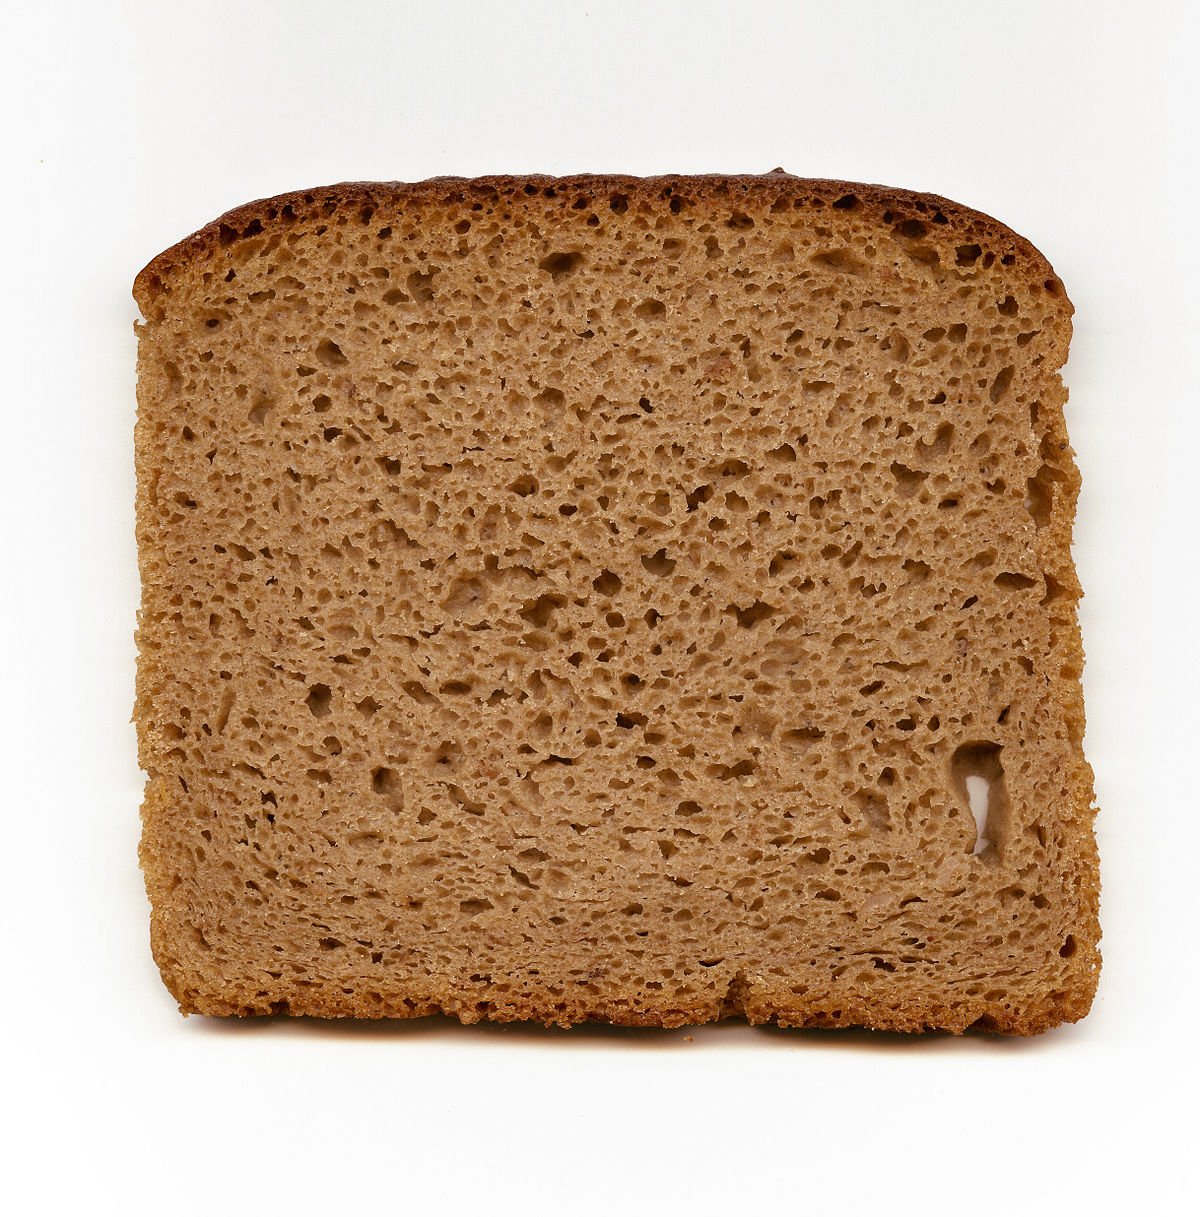 recipe: brown bread advantages and disadvantages [24]